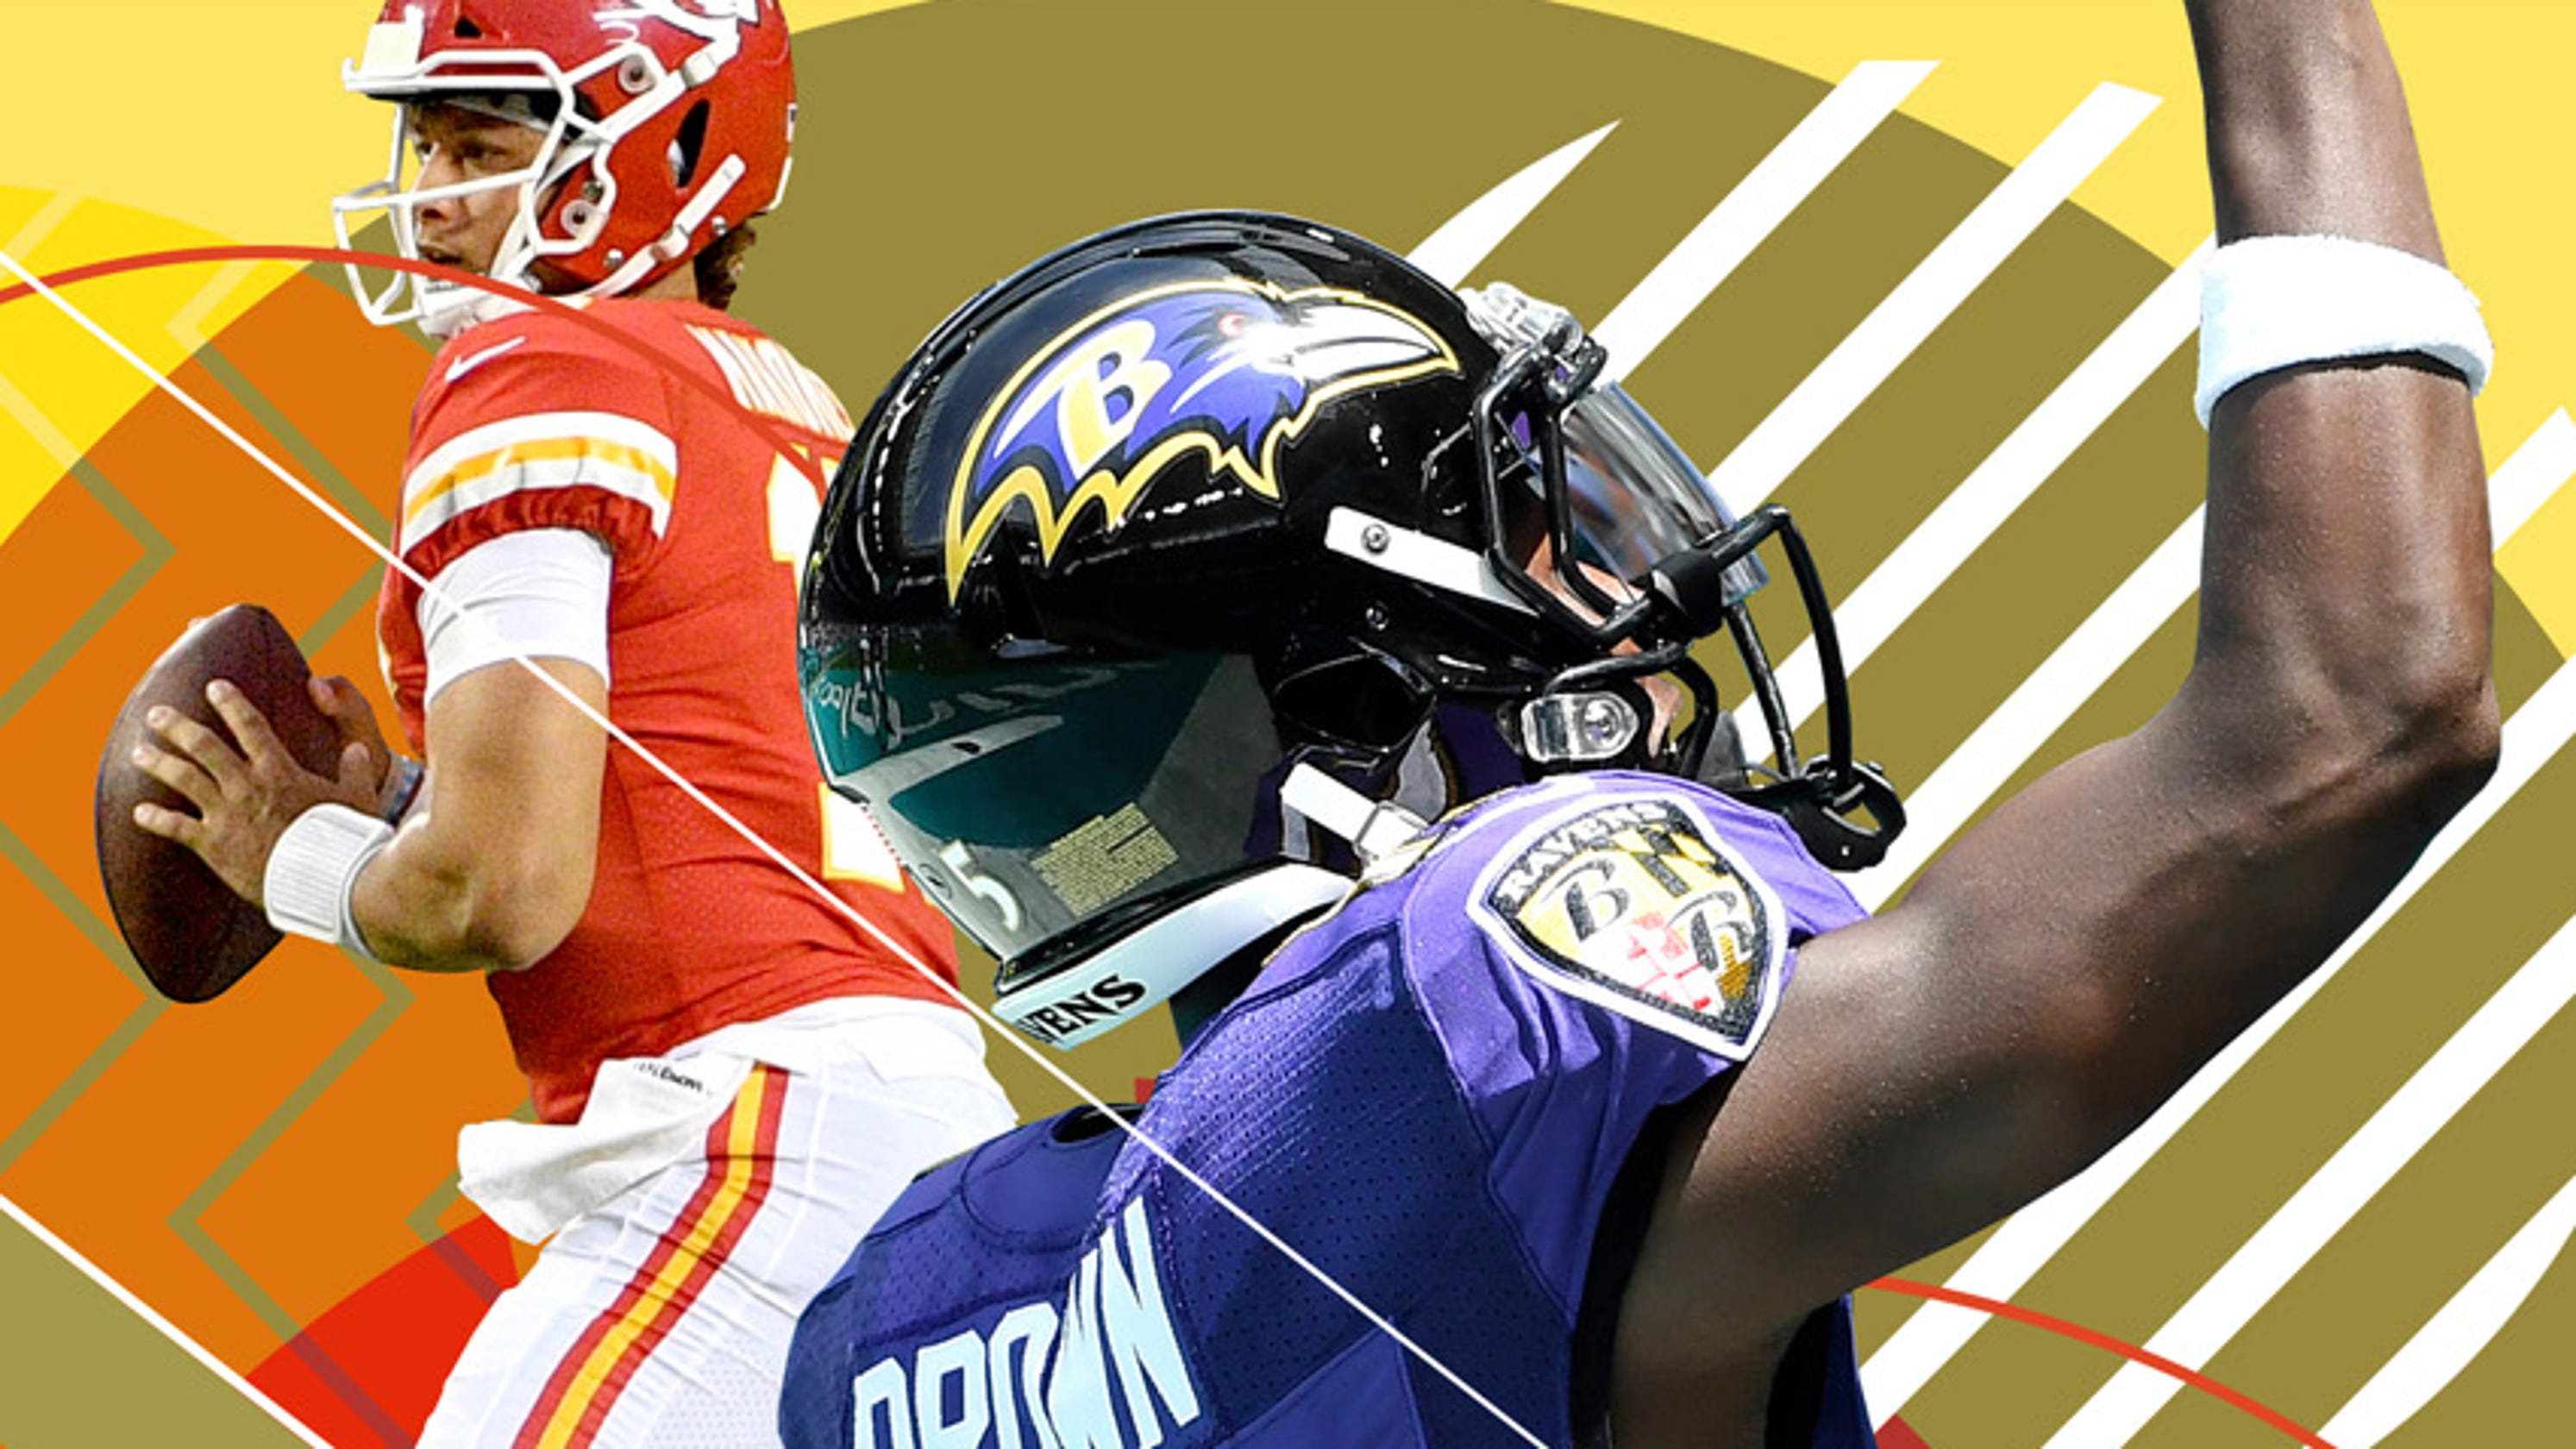 NFL power rankings: Patriots open 2019 season at No. 1, but Chiefs and Ravens in hot pursuit